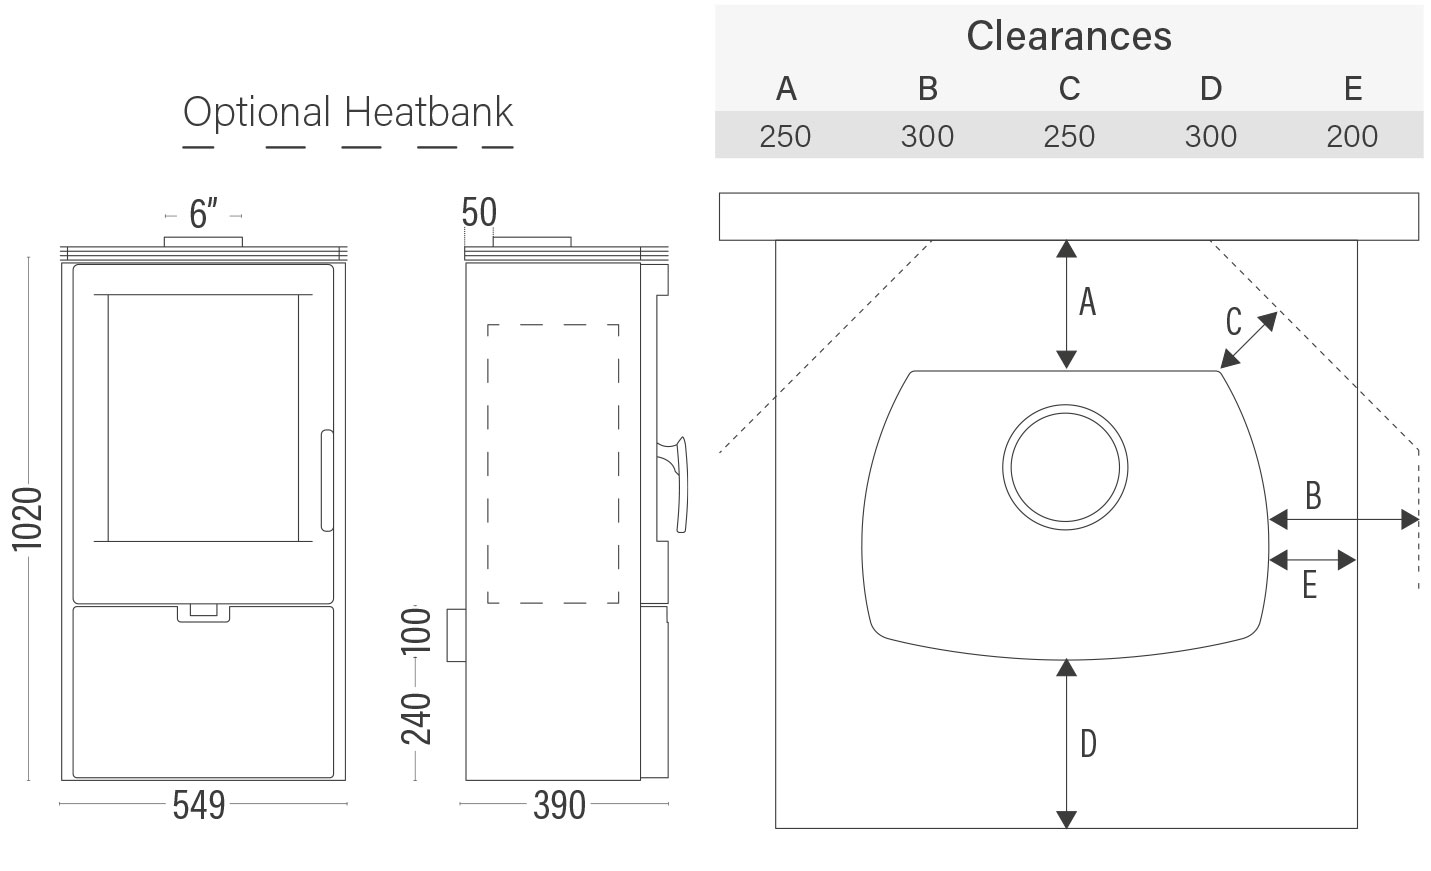 Euro Falun wood heater dimensions and clearances with optional heatbank